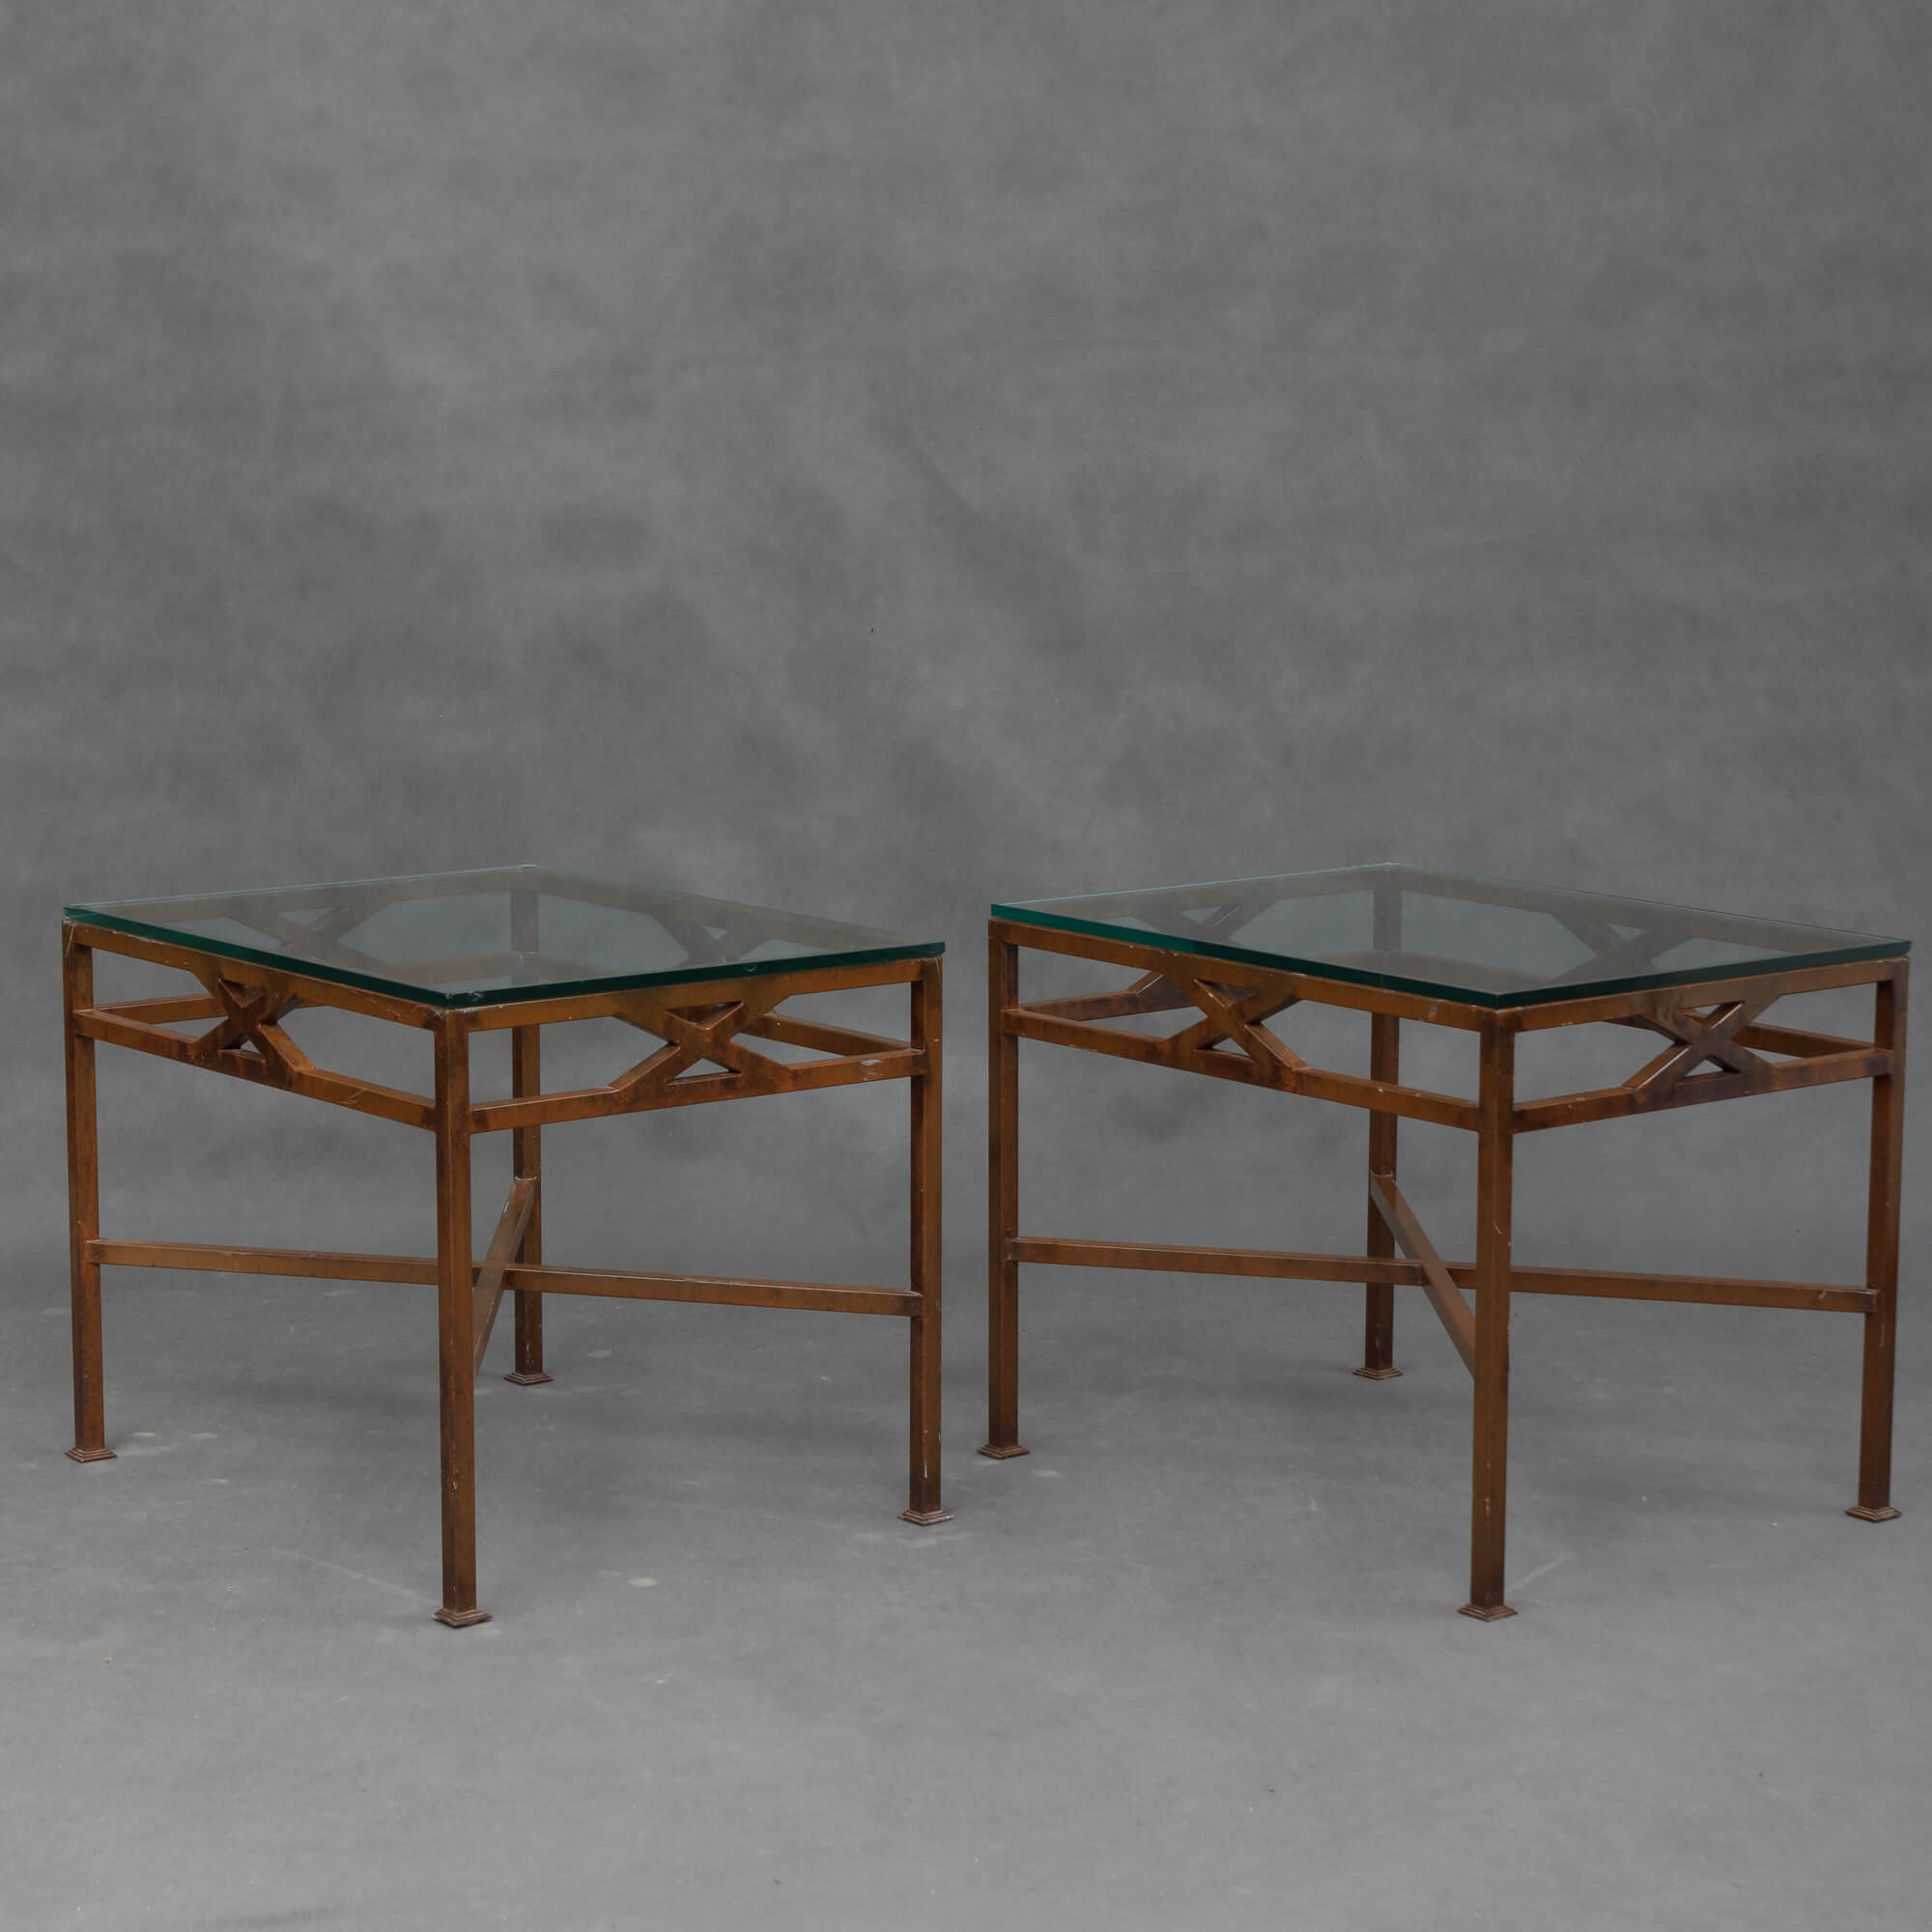 Swedish Mid Century Furniture Pair Of Swedish Mid Century Iron Side Tables